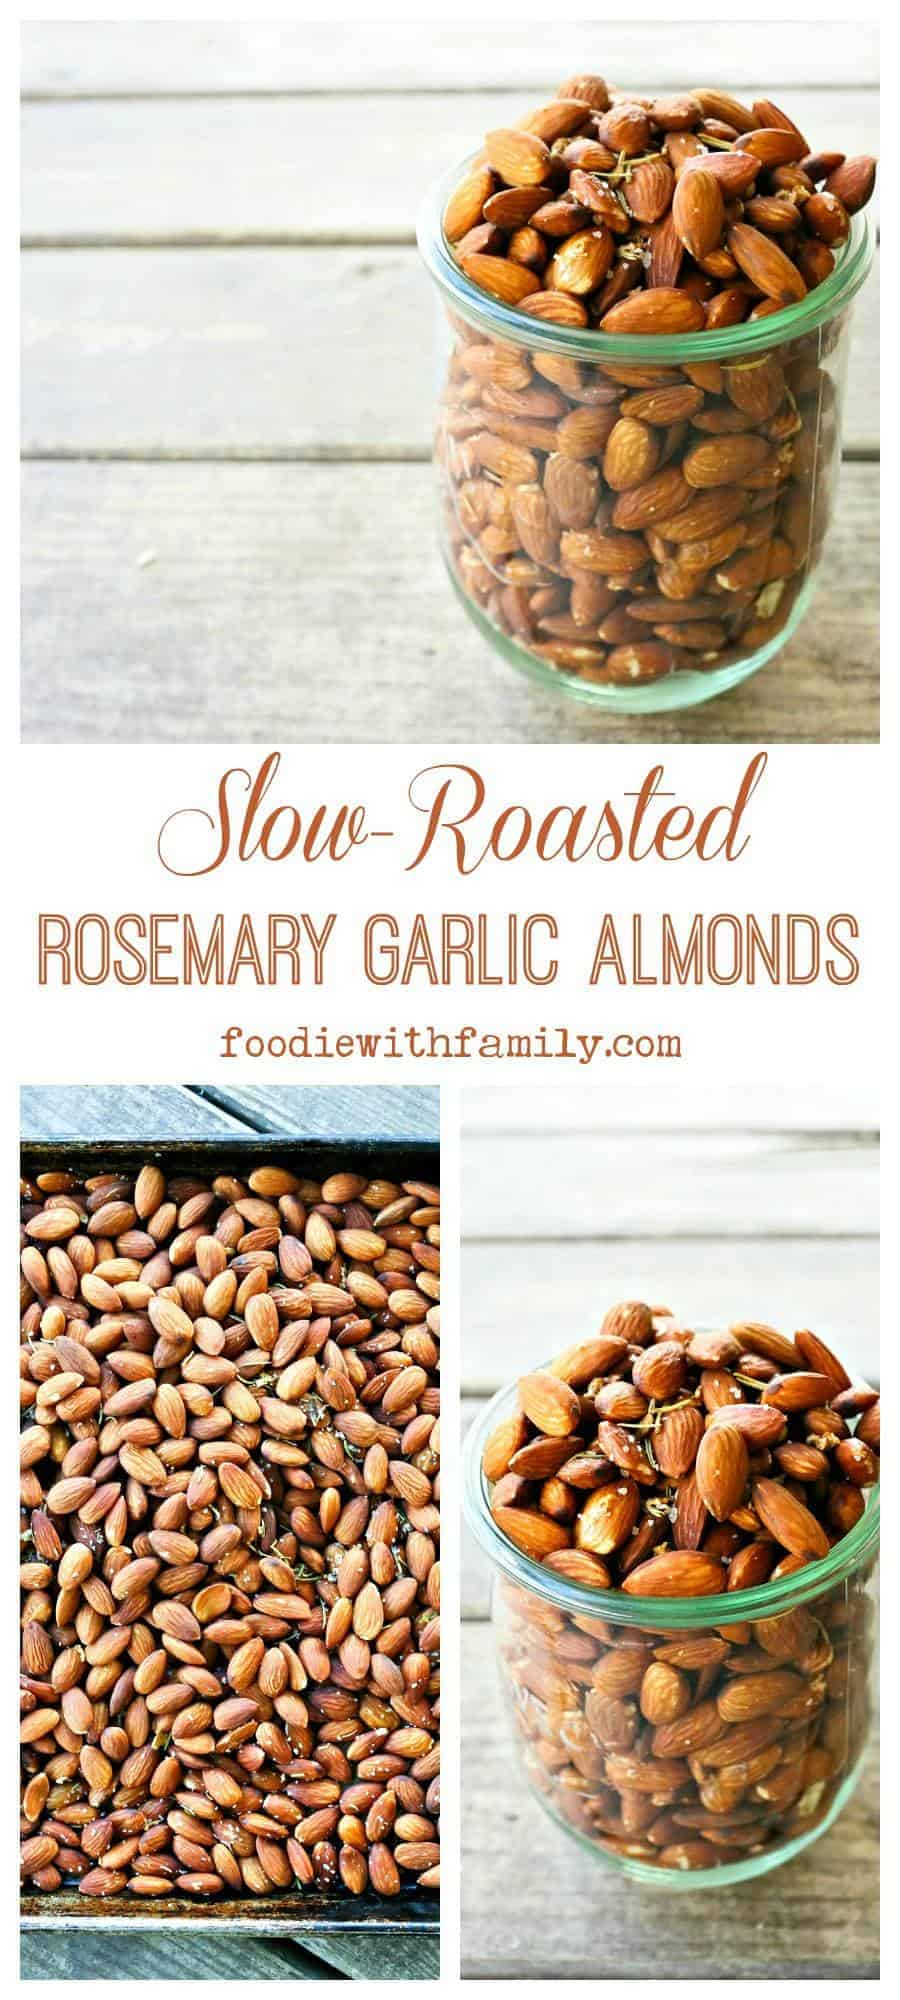 Slow-Roasted Rosemary Garlic Almonds are a simple, satisfying, healthy snack.